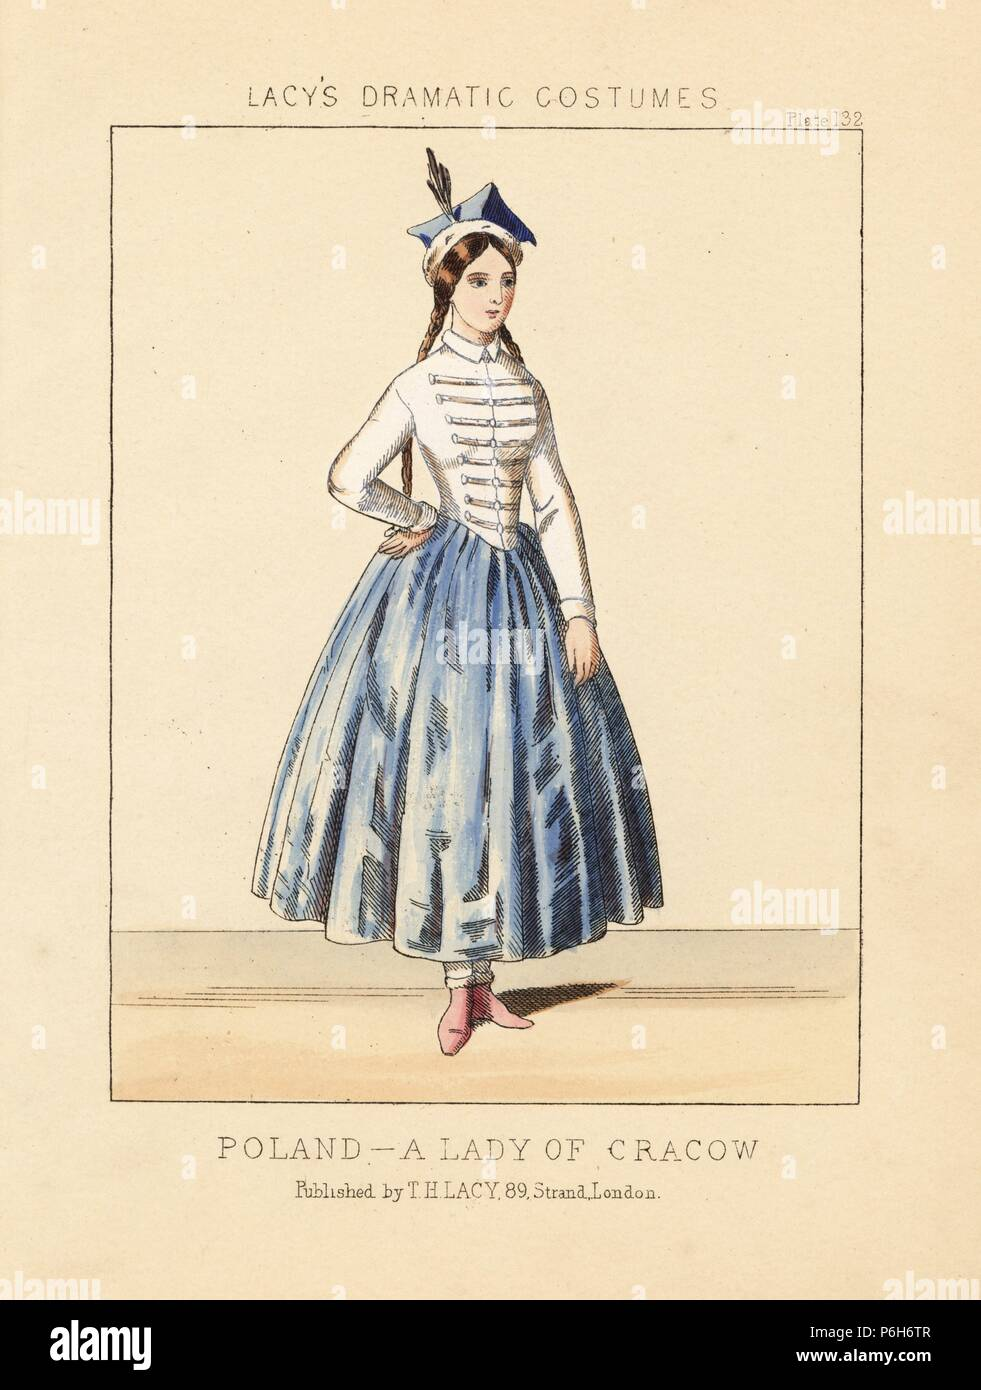 Costume of a lady of Cracow, Poland, 19th century. She wears a square hat with plume, white jacket with frogging, full blue skirts, red shoes. Handcoloured lithograph from Thomas Hailes Lacy's 'Female Costumes Historical, National and Dramatic in 200 Plates,' London, 1865. Lacy (1809-1873) was a British actor, playwright, theatrical manager and publisher. - Stock Image